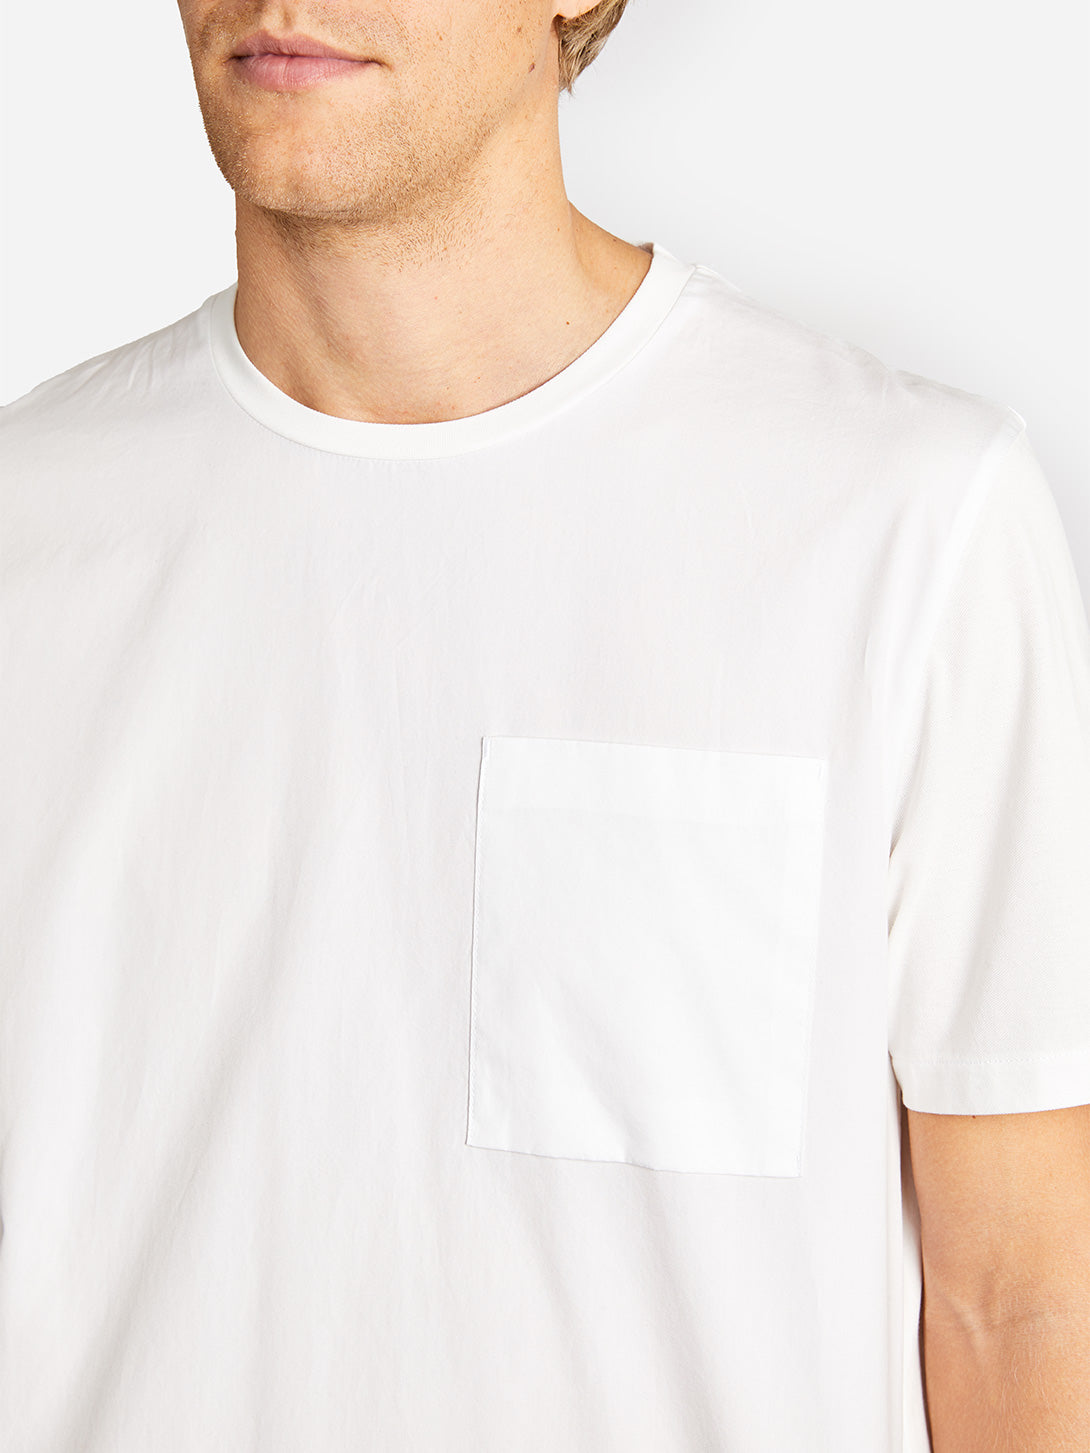 LENOX POCKET TEE OPTIC WHITE ONS CLOTHING GREY LABEL